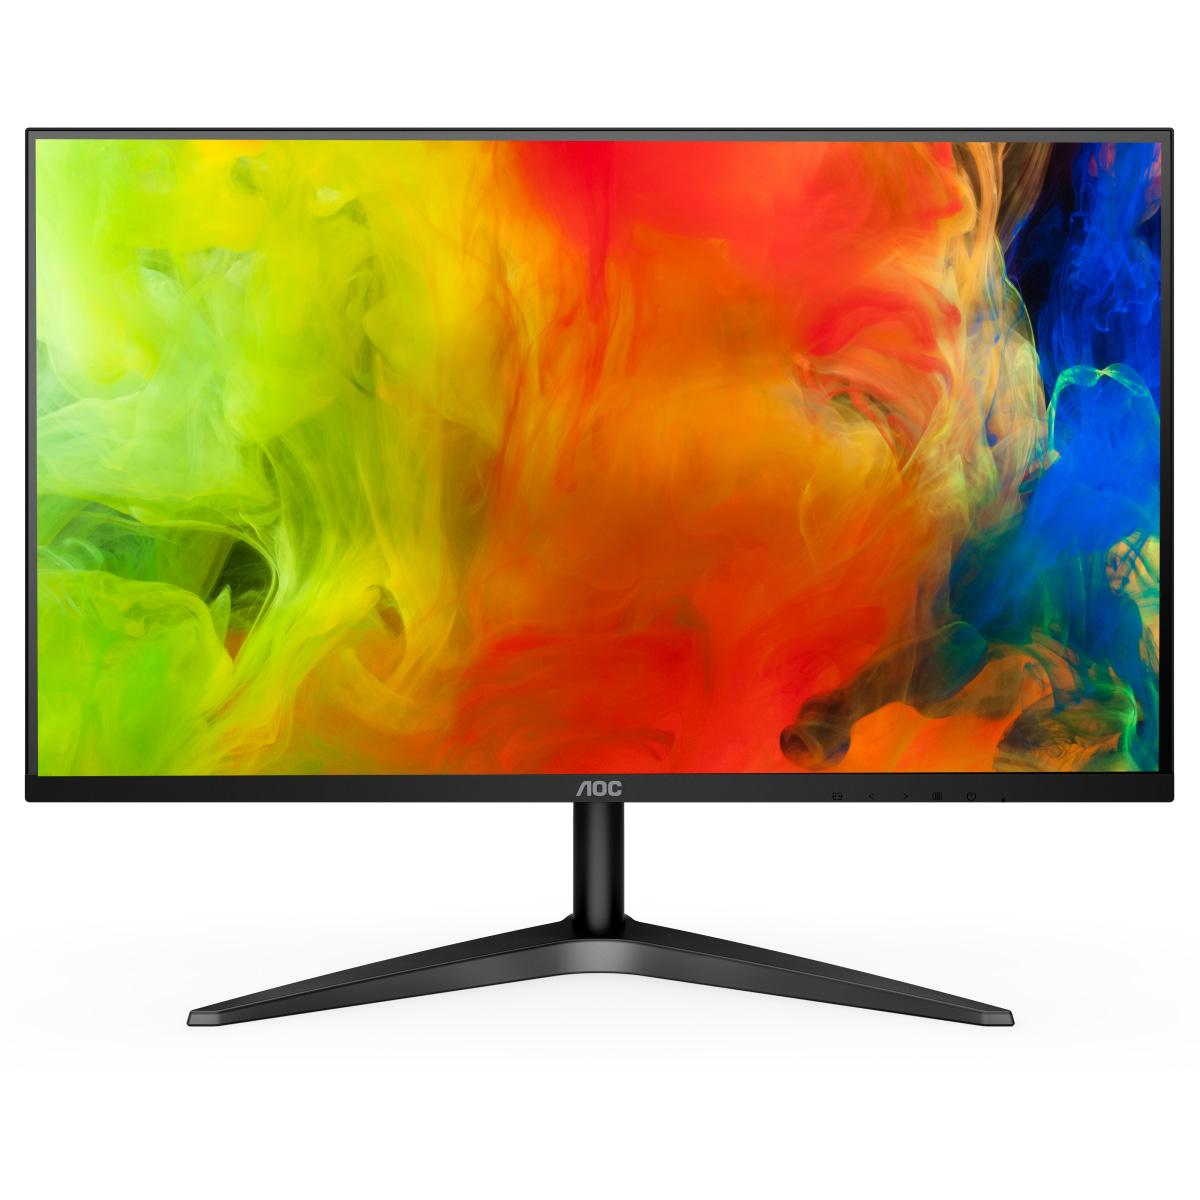 Monitor 27 LED FullHD 27B1H (Preto Fosco) - AOC